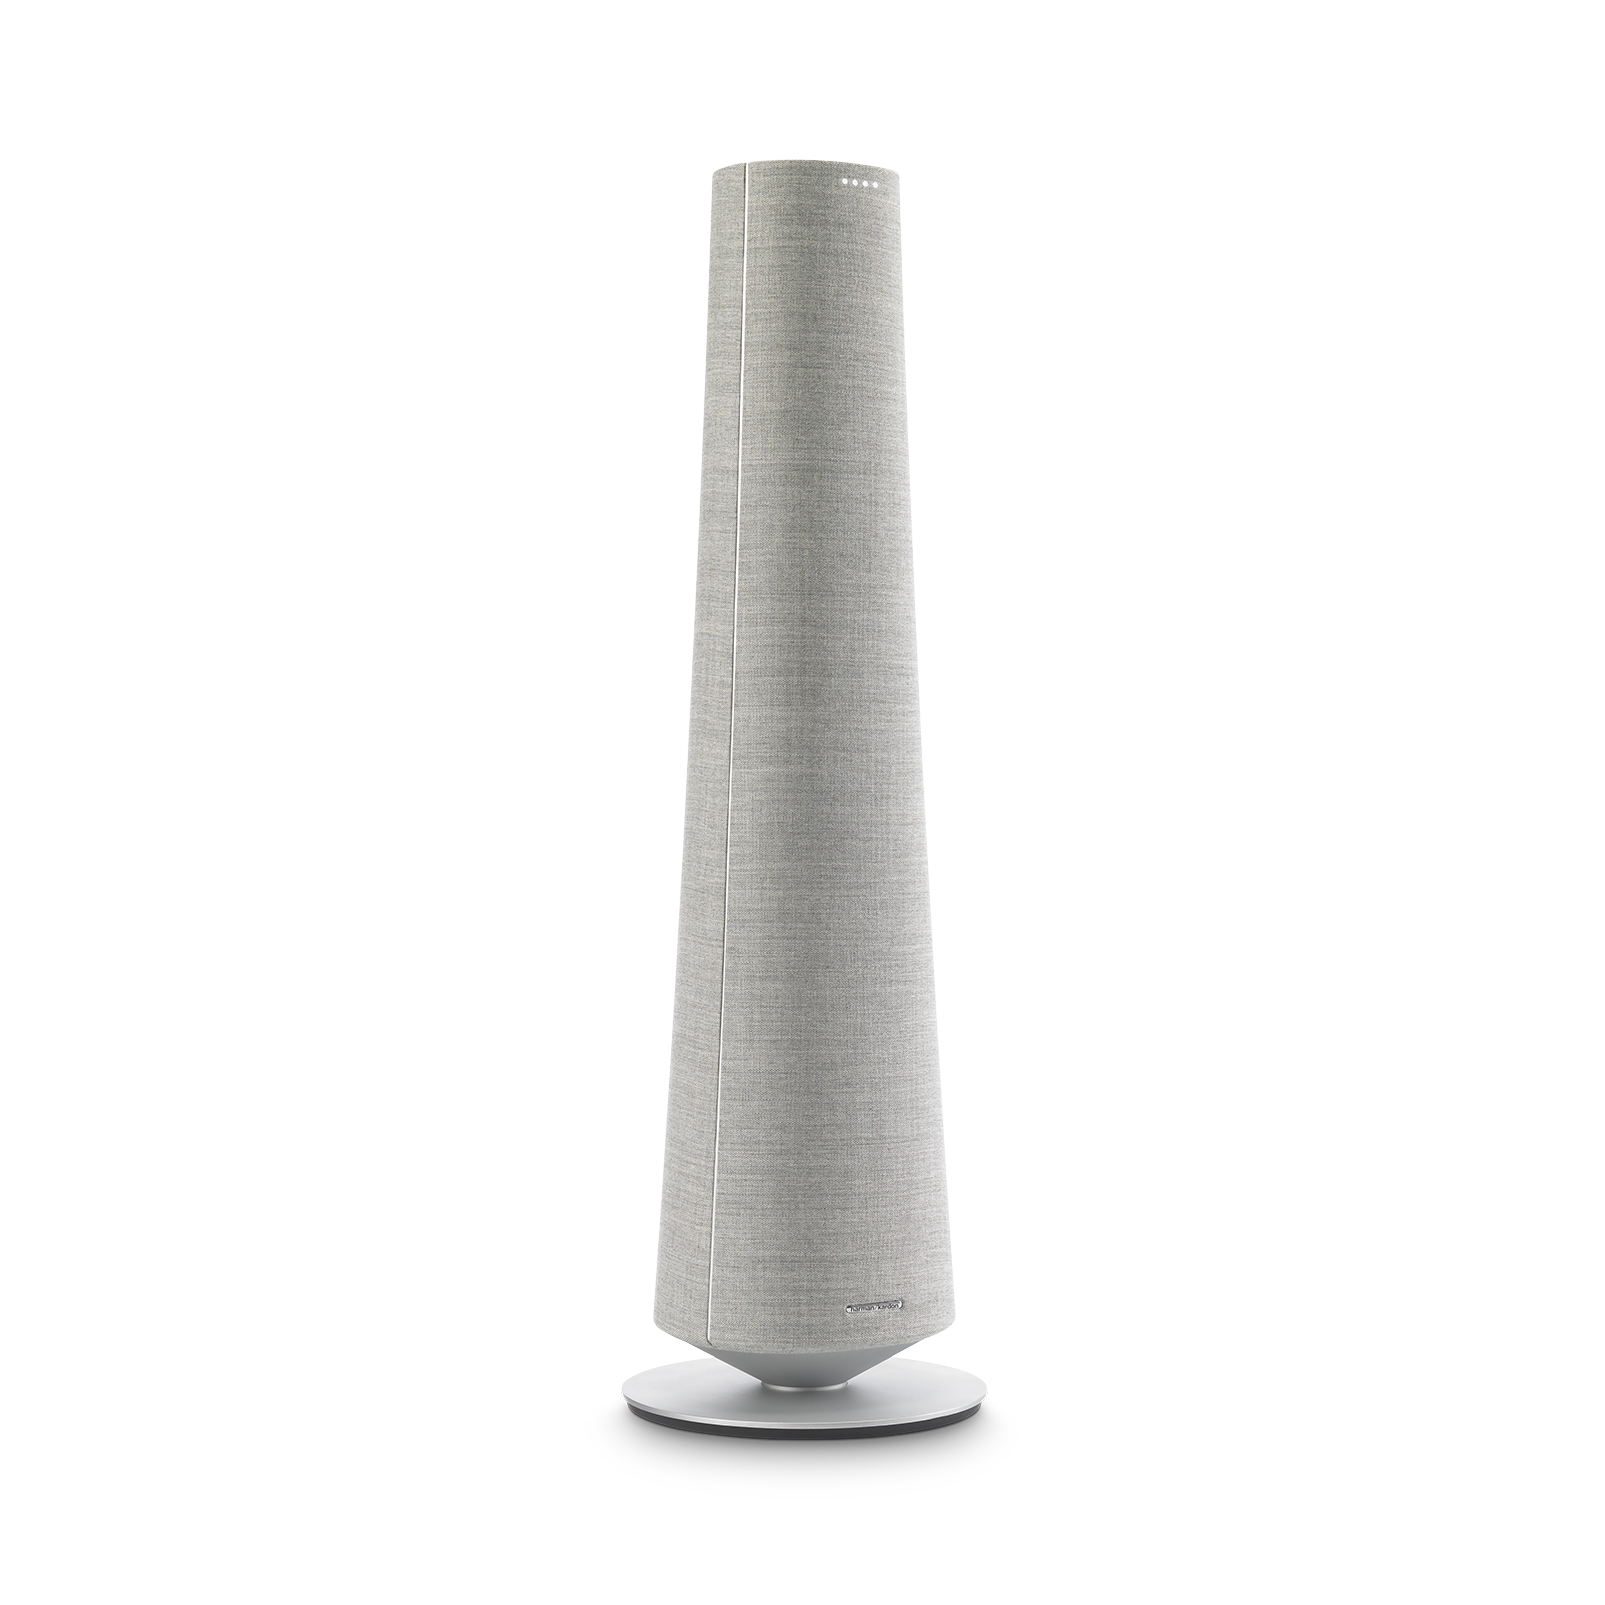 Harman Kardon Citation Tower - Grey - Smart Premium Floorstanding Speaker that delivers an impactful performance - Detailshot 2